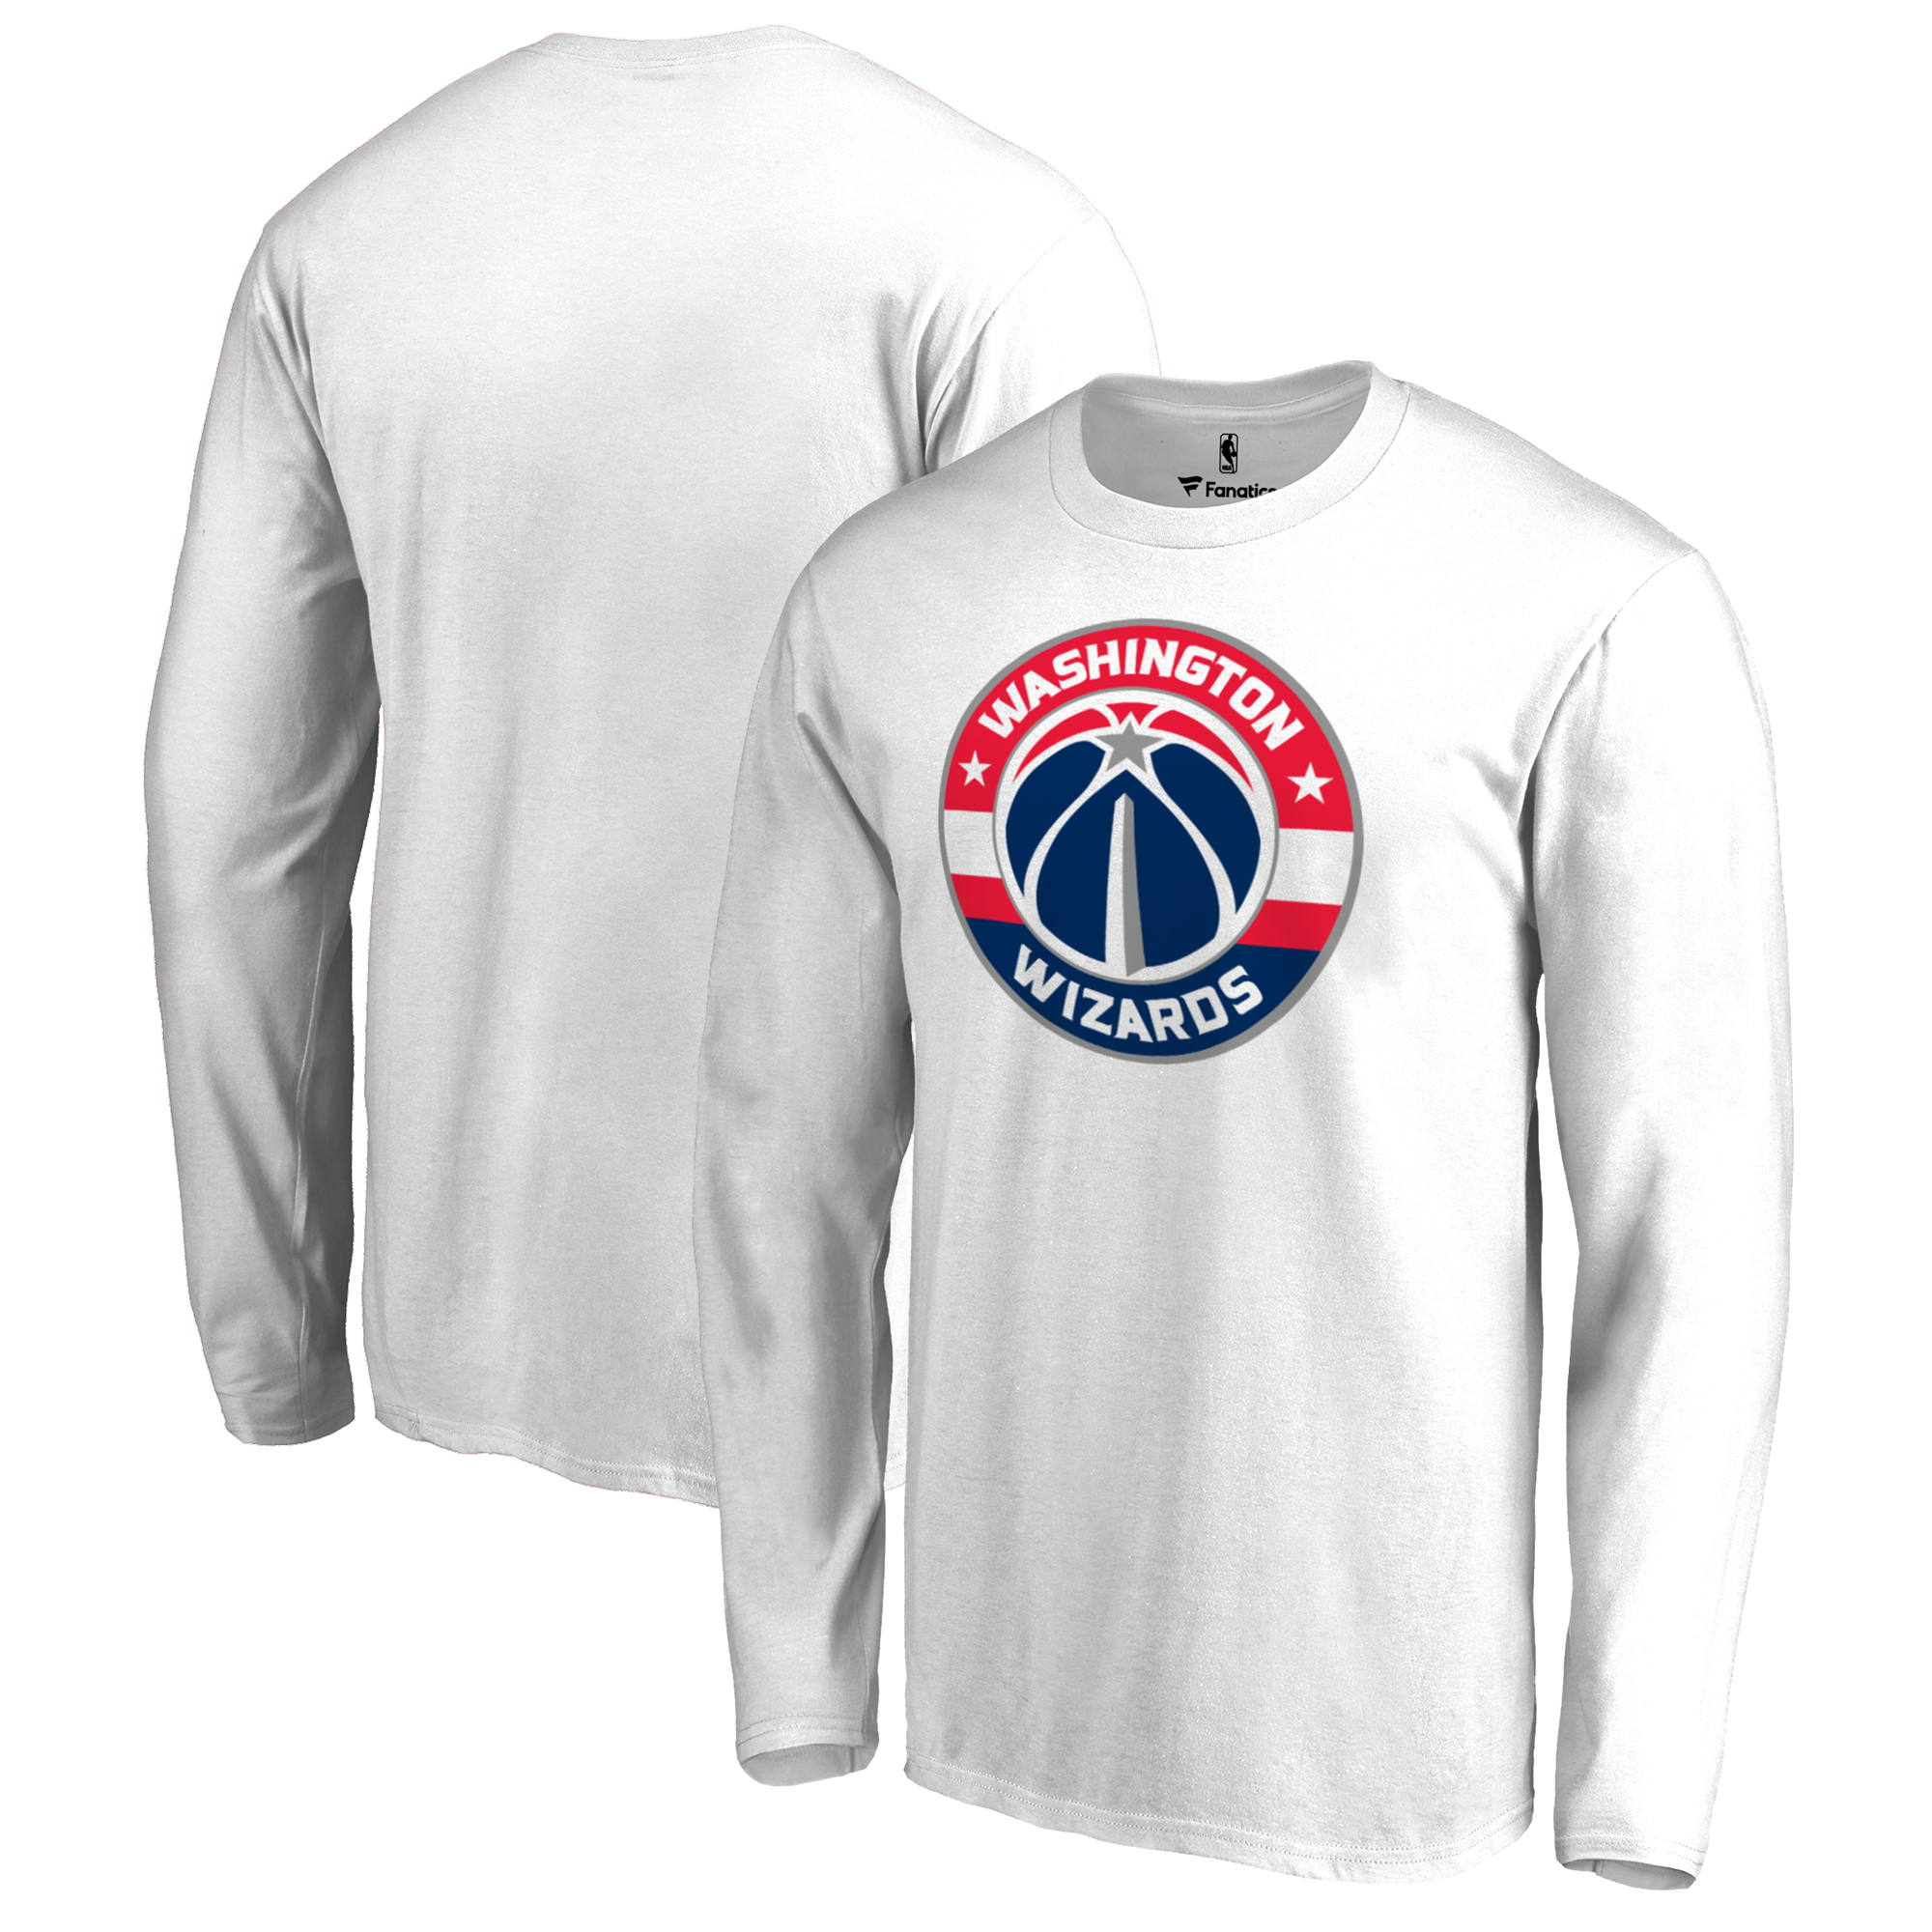 Washington Wizards Fanatics Branded Big & Tall Team Primary Logo Long Sleeve T-Shirt - White